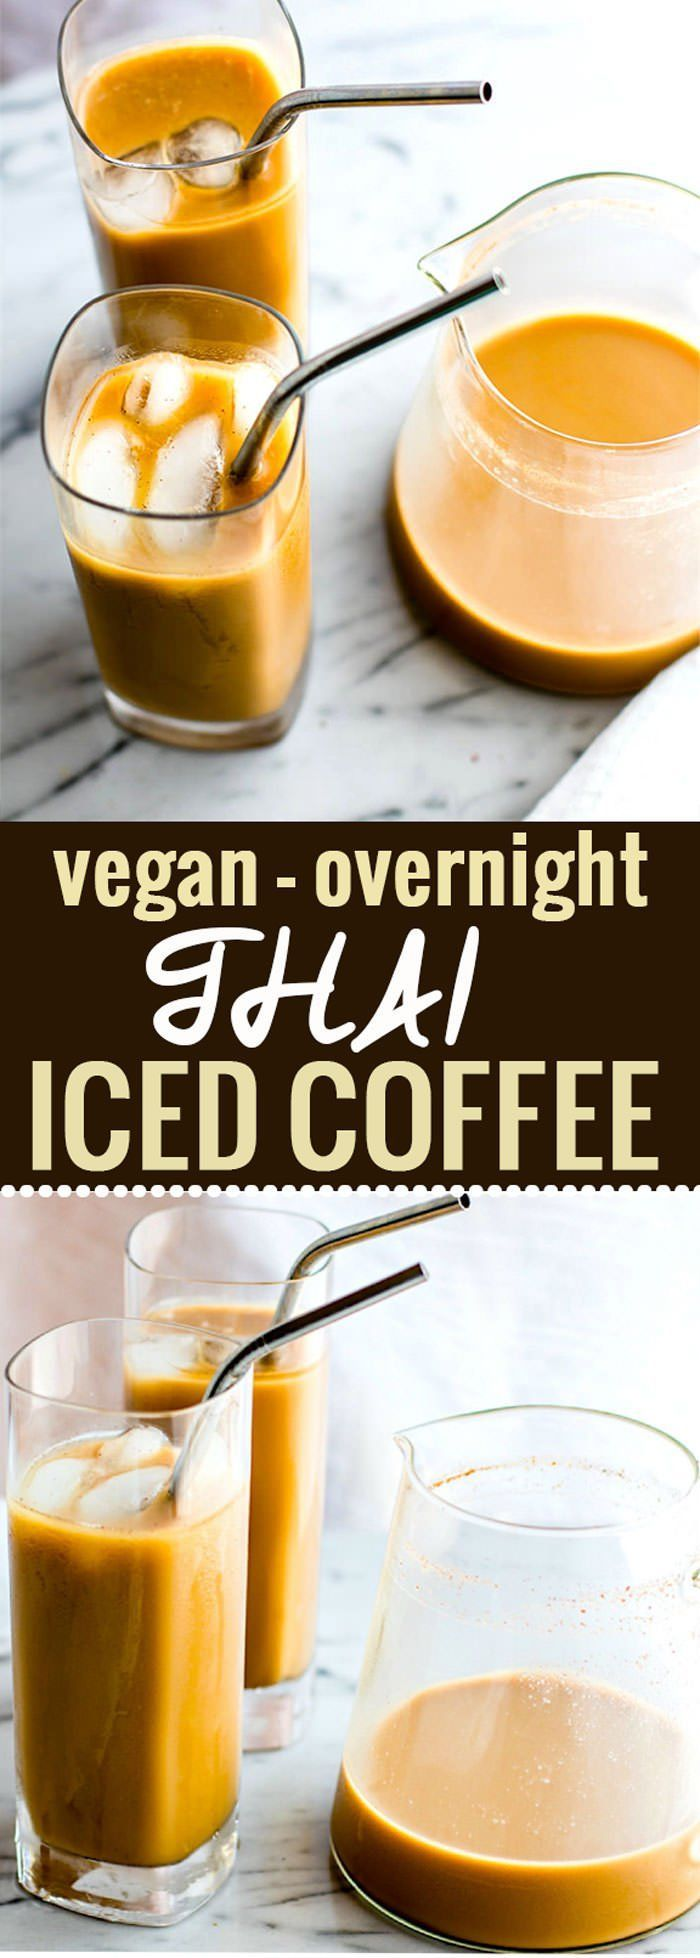 Vegan Overnight Thai Iced Coffee. A super simple THAI iced coffee that's healthy and packed with flavor! This vegan iced coffee version is perfect to make ahead and enjoy the next morning. #nutchello